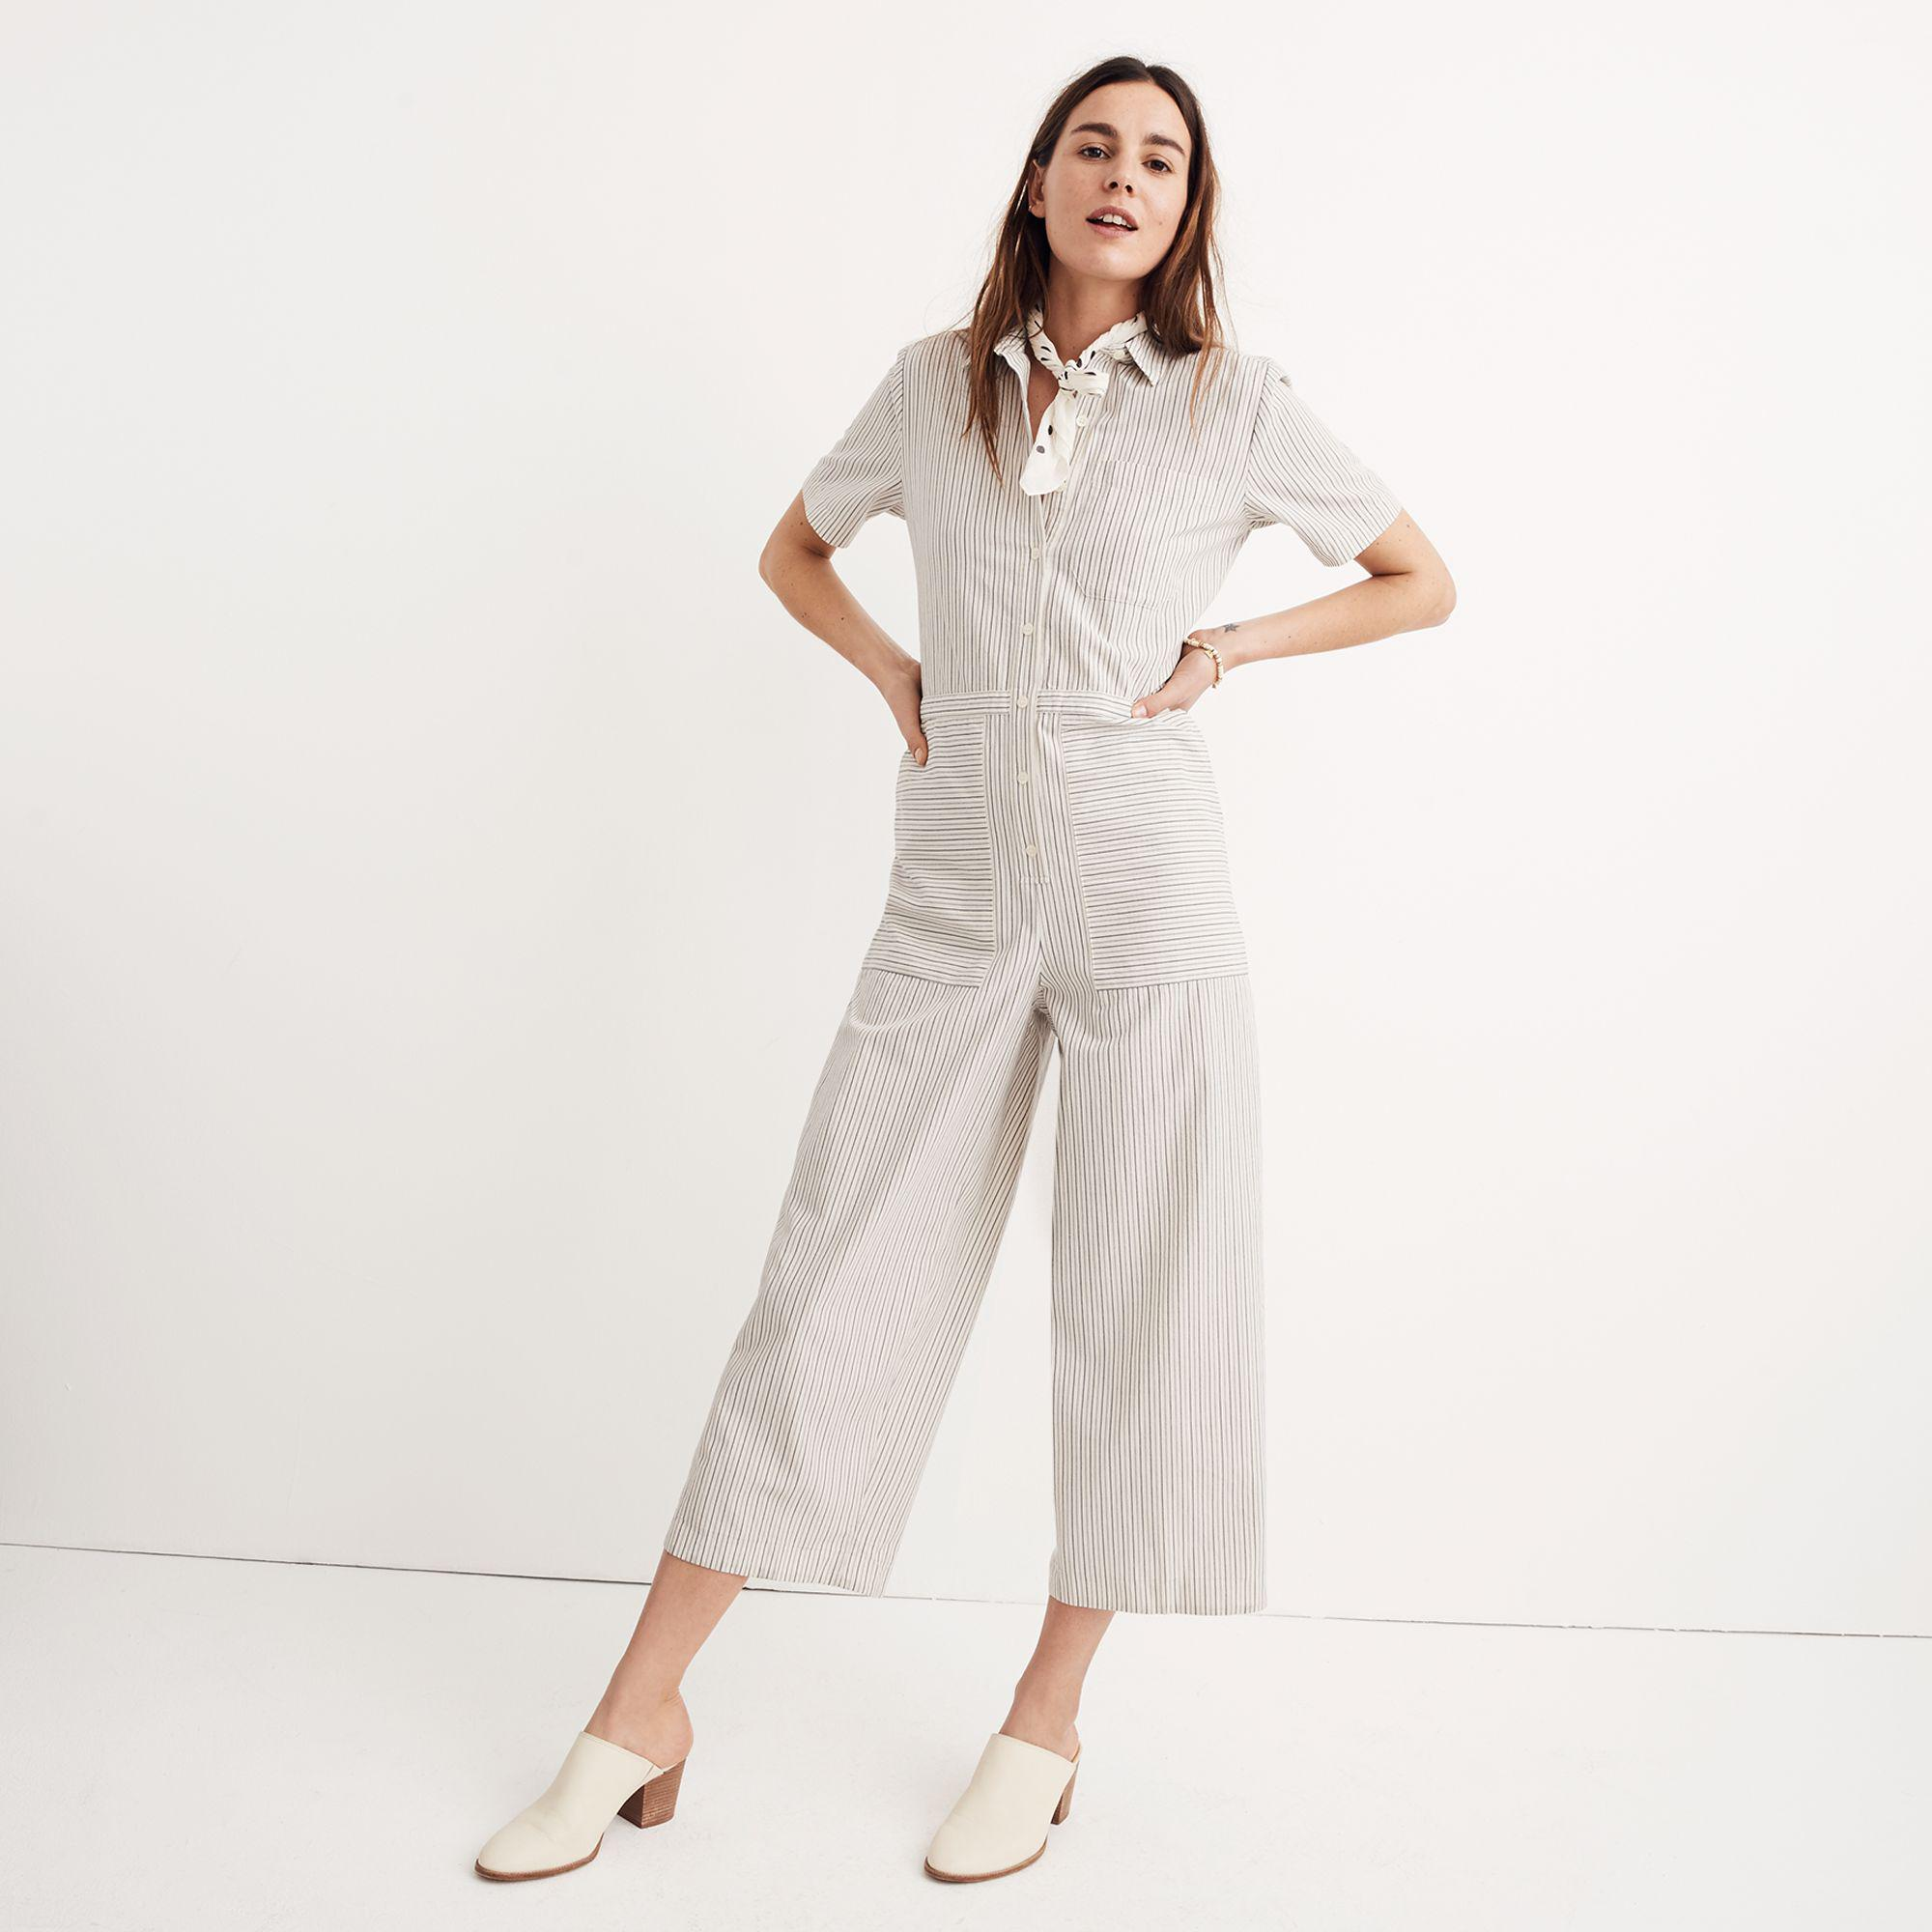 eaa31a8a238c Lyst - Madewell Striped Utility Jumpsuit